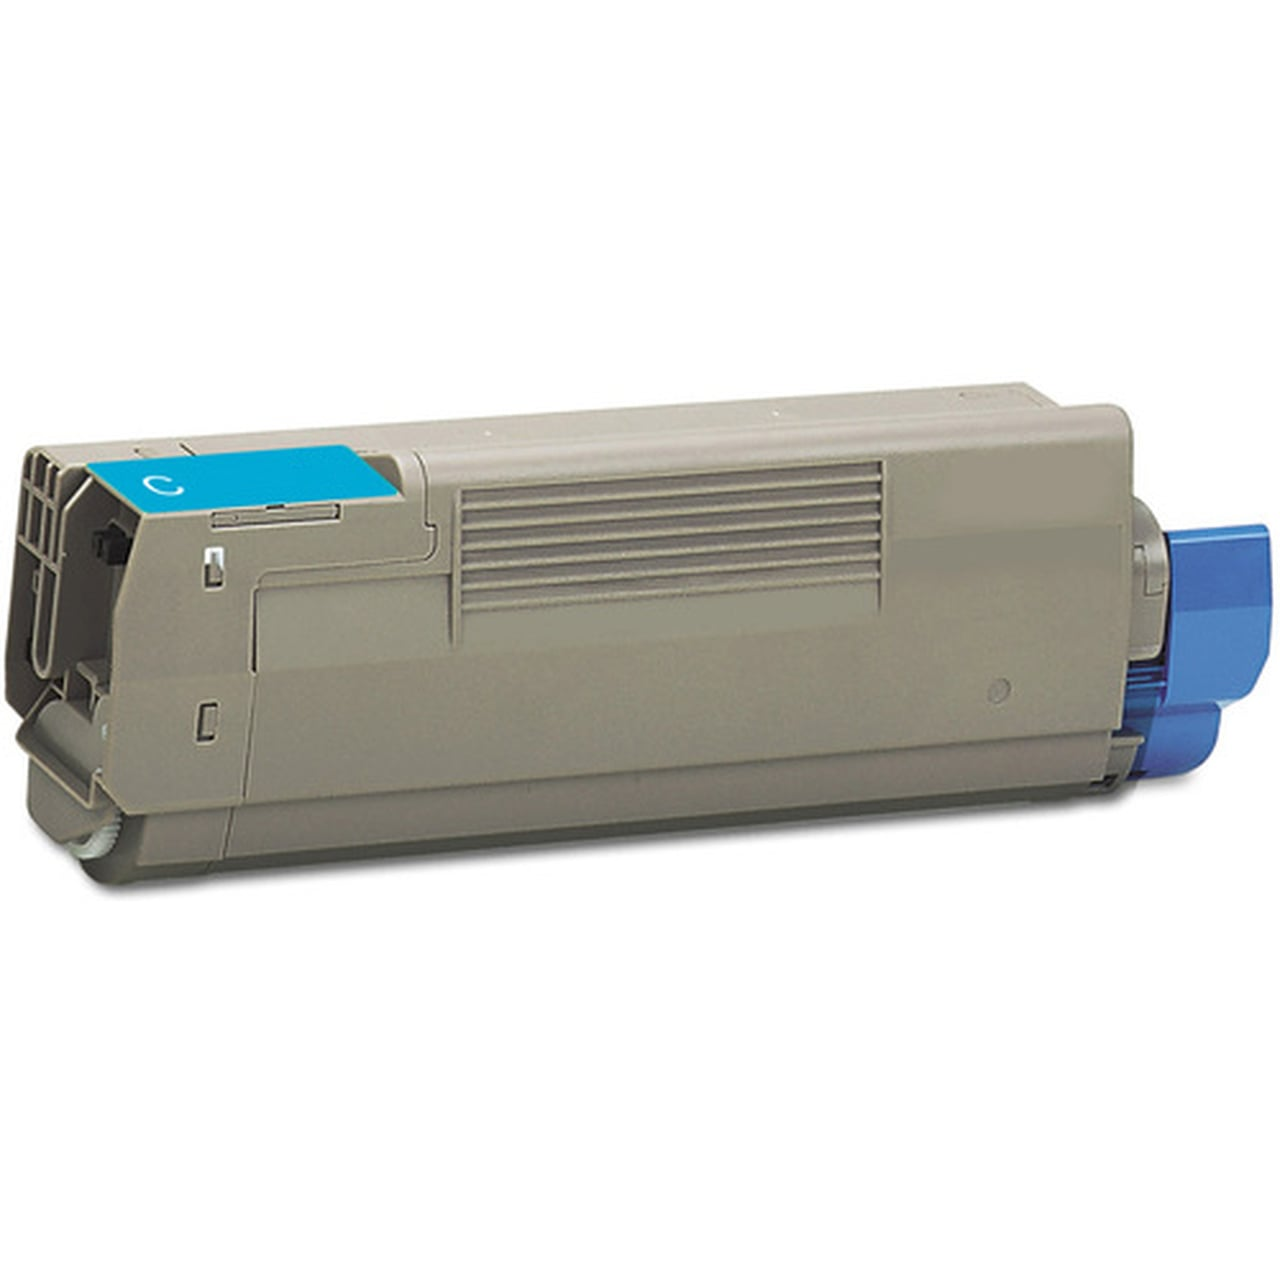 43866103 Toner Cartridge - Okidata Remanufactured (Cyan)